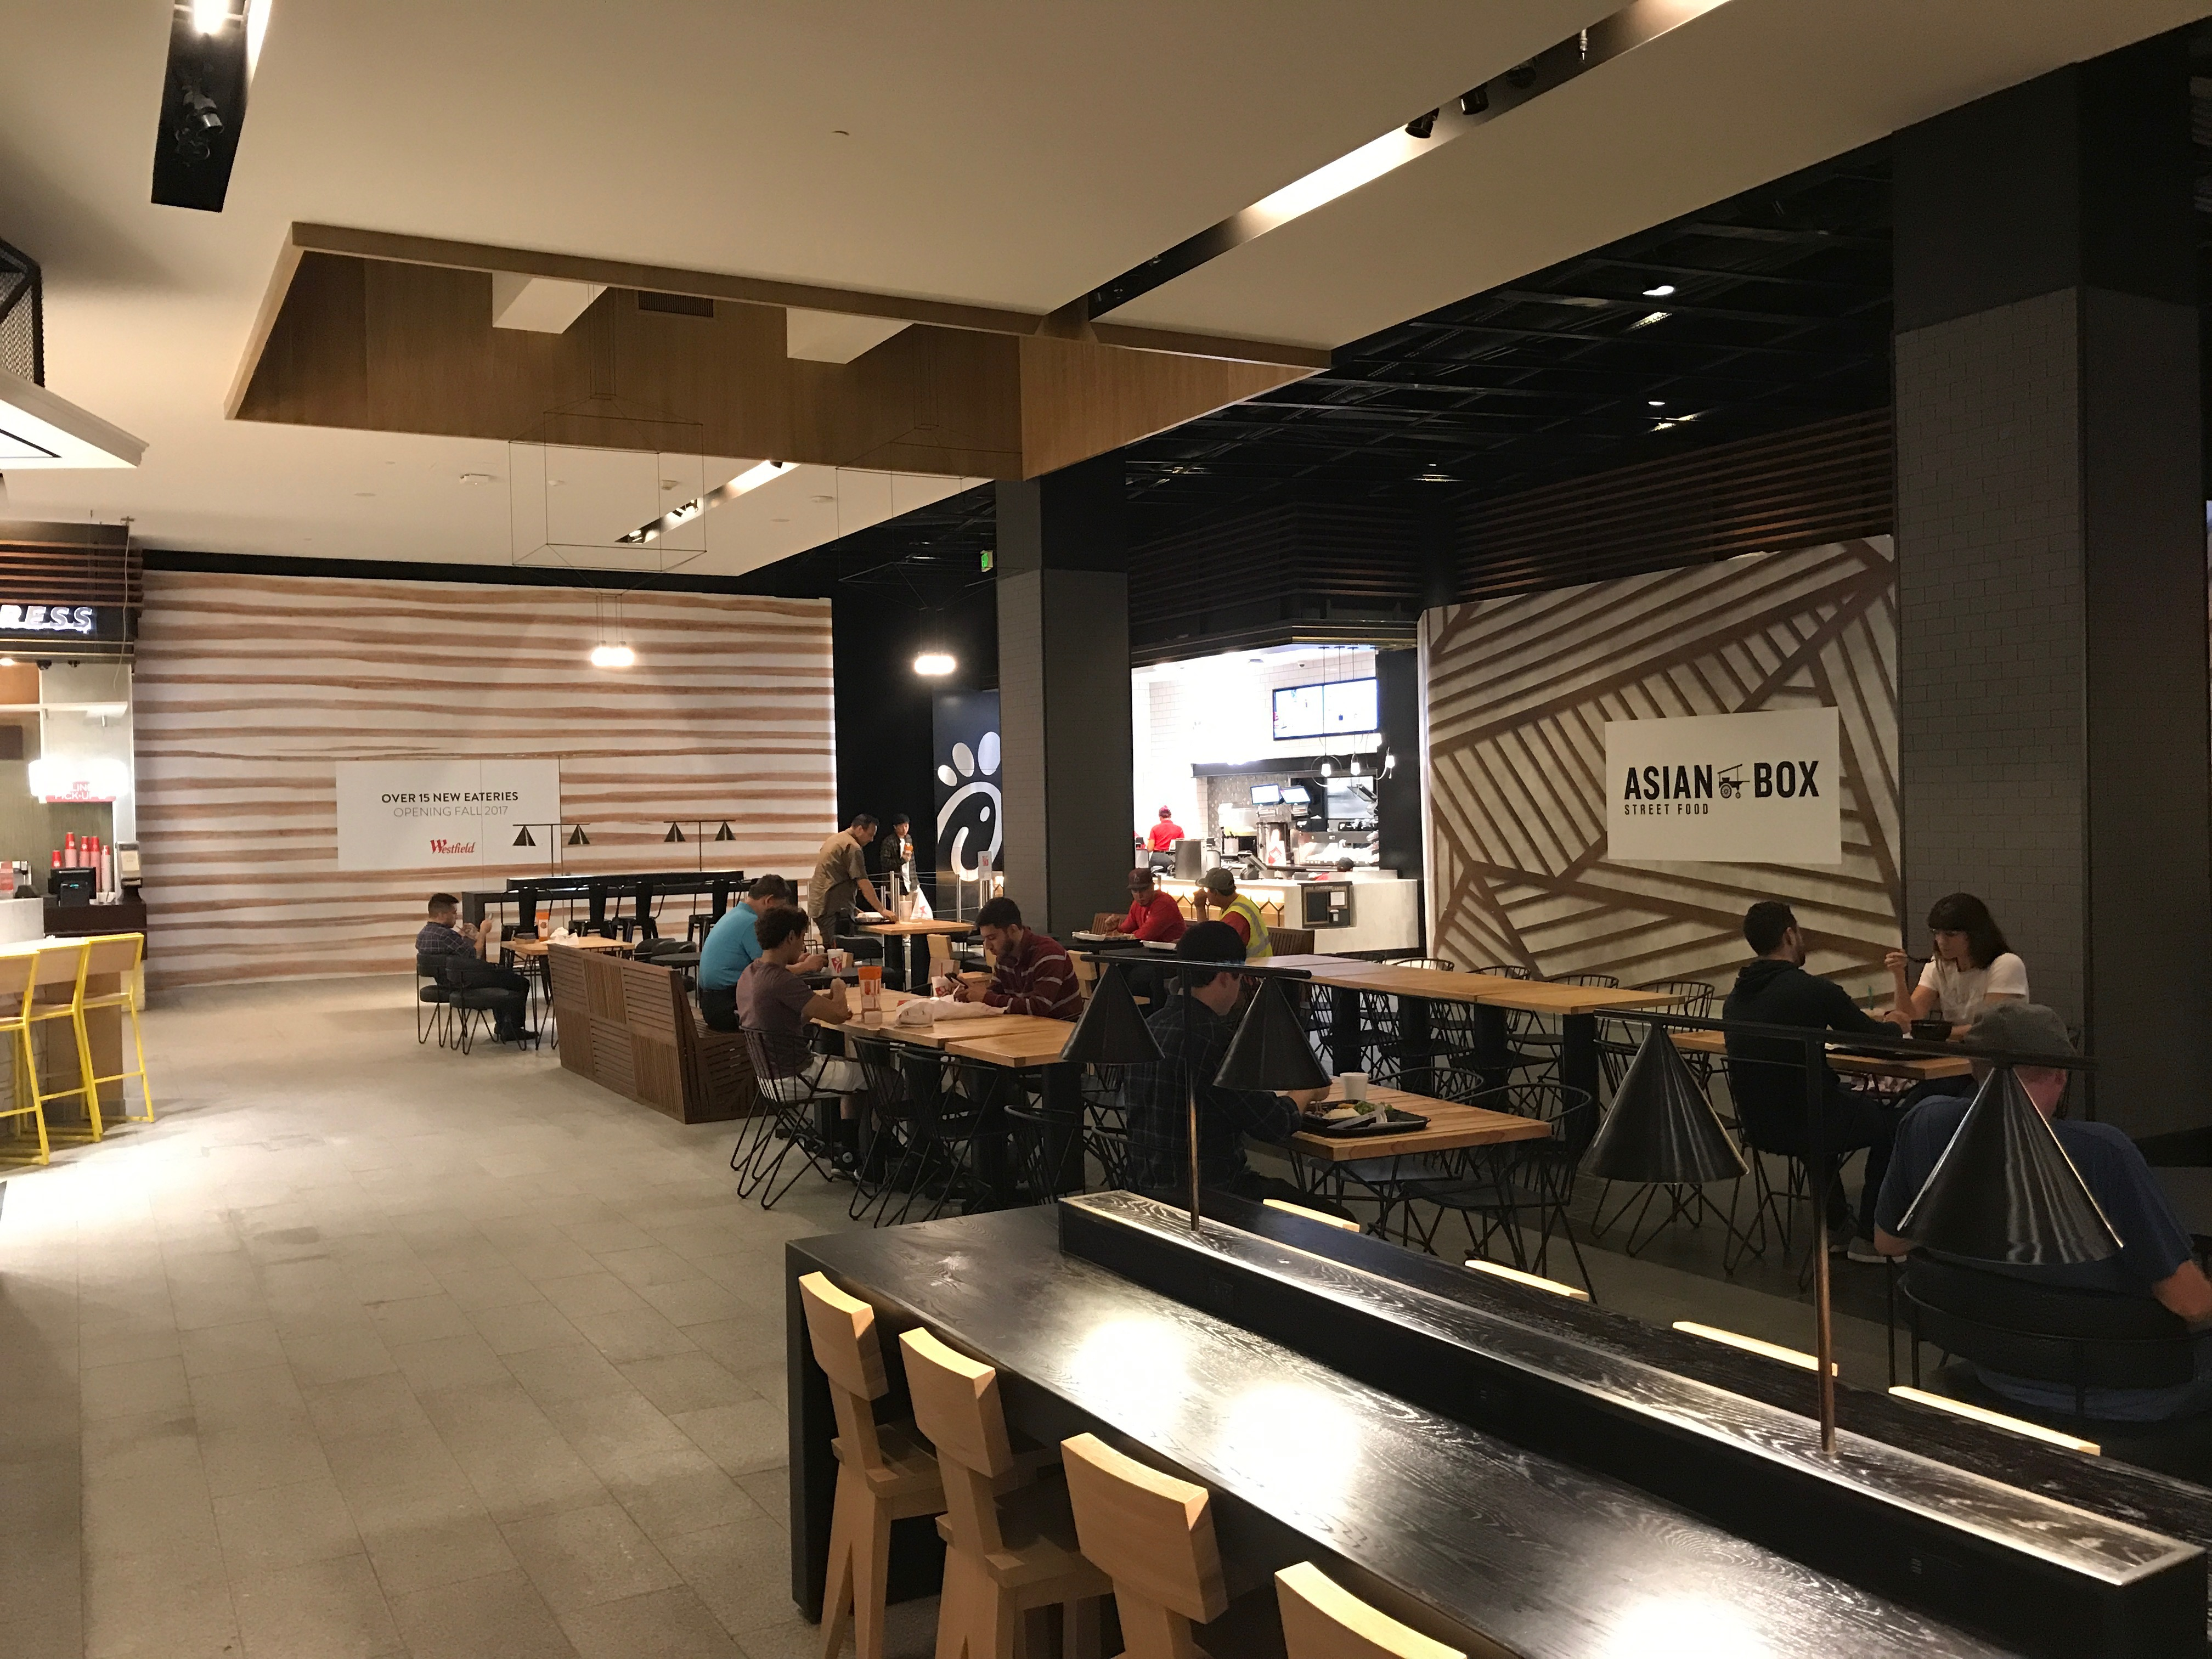 Customers enjoy the newly furnished food court and recently opened Chick-Fil-A.